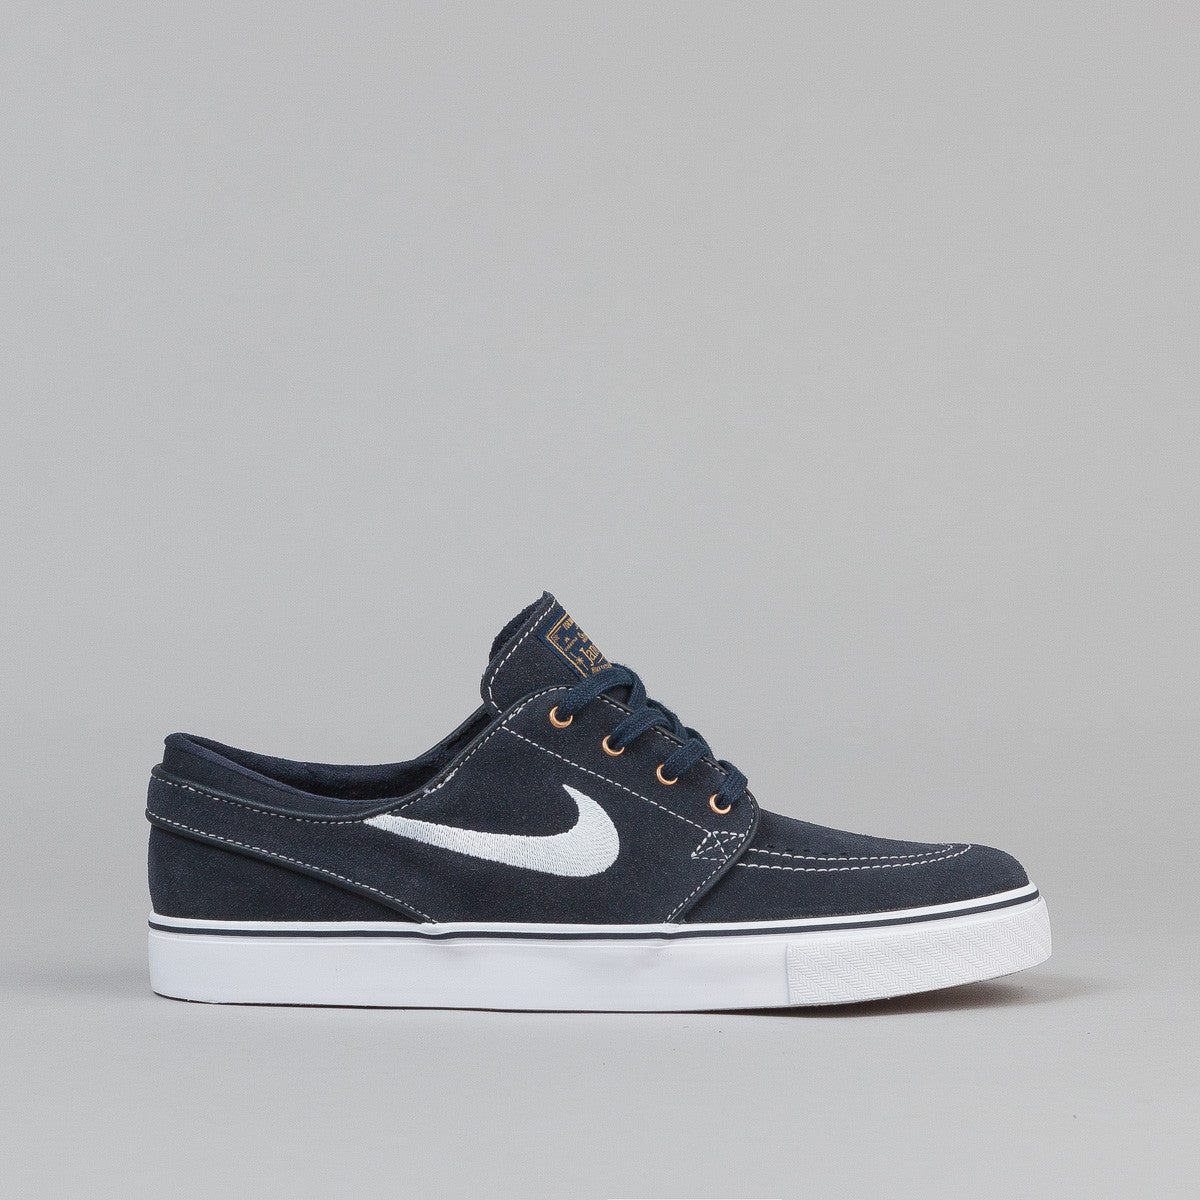 Nike SB Stefan Janoski Shoes - Dark Obsidian/White - White - Gum Light Brown